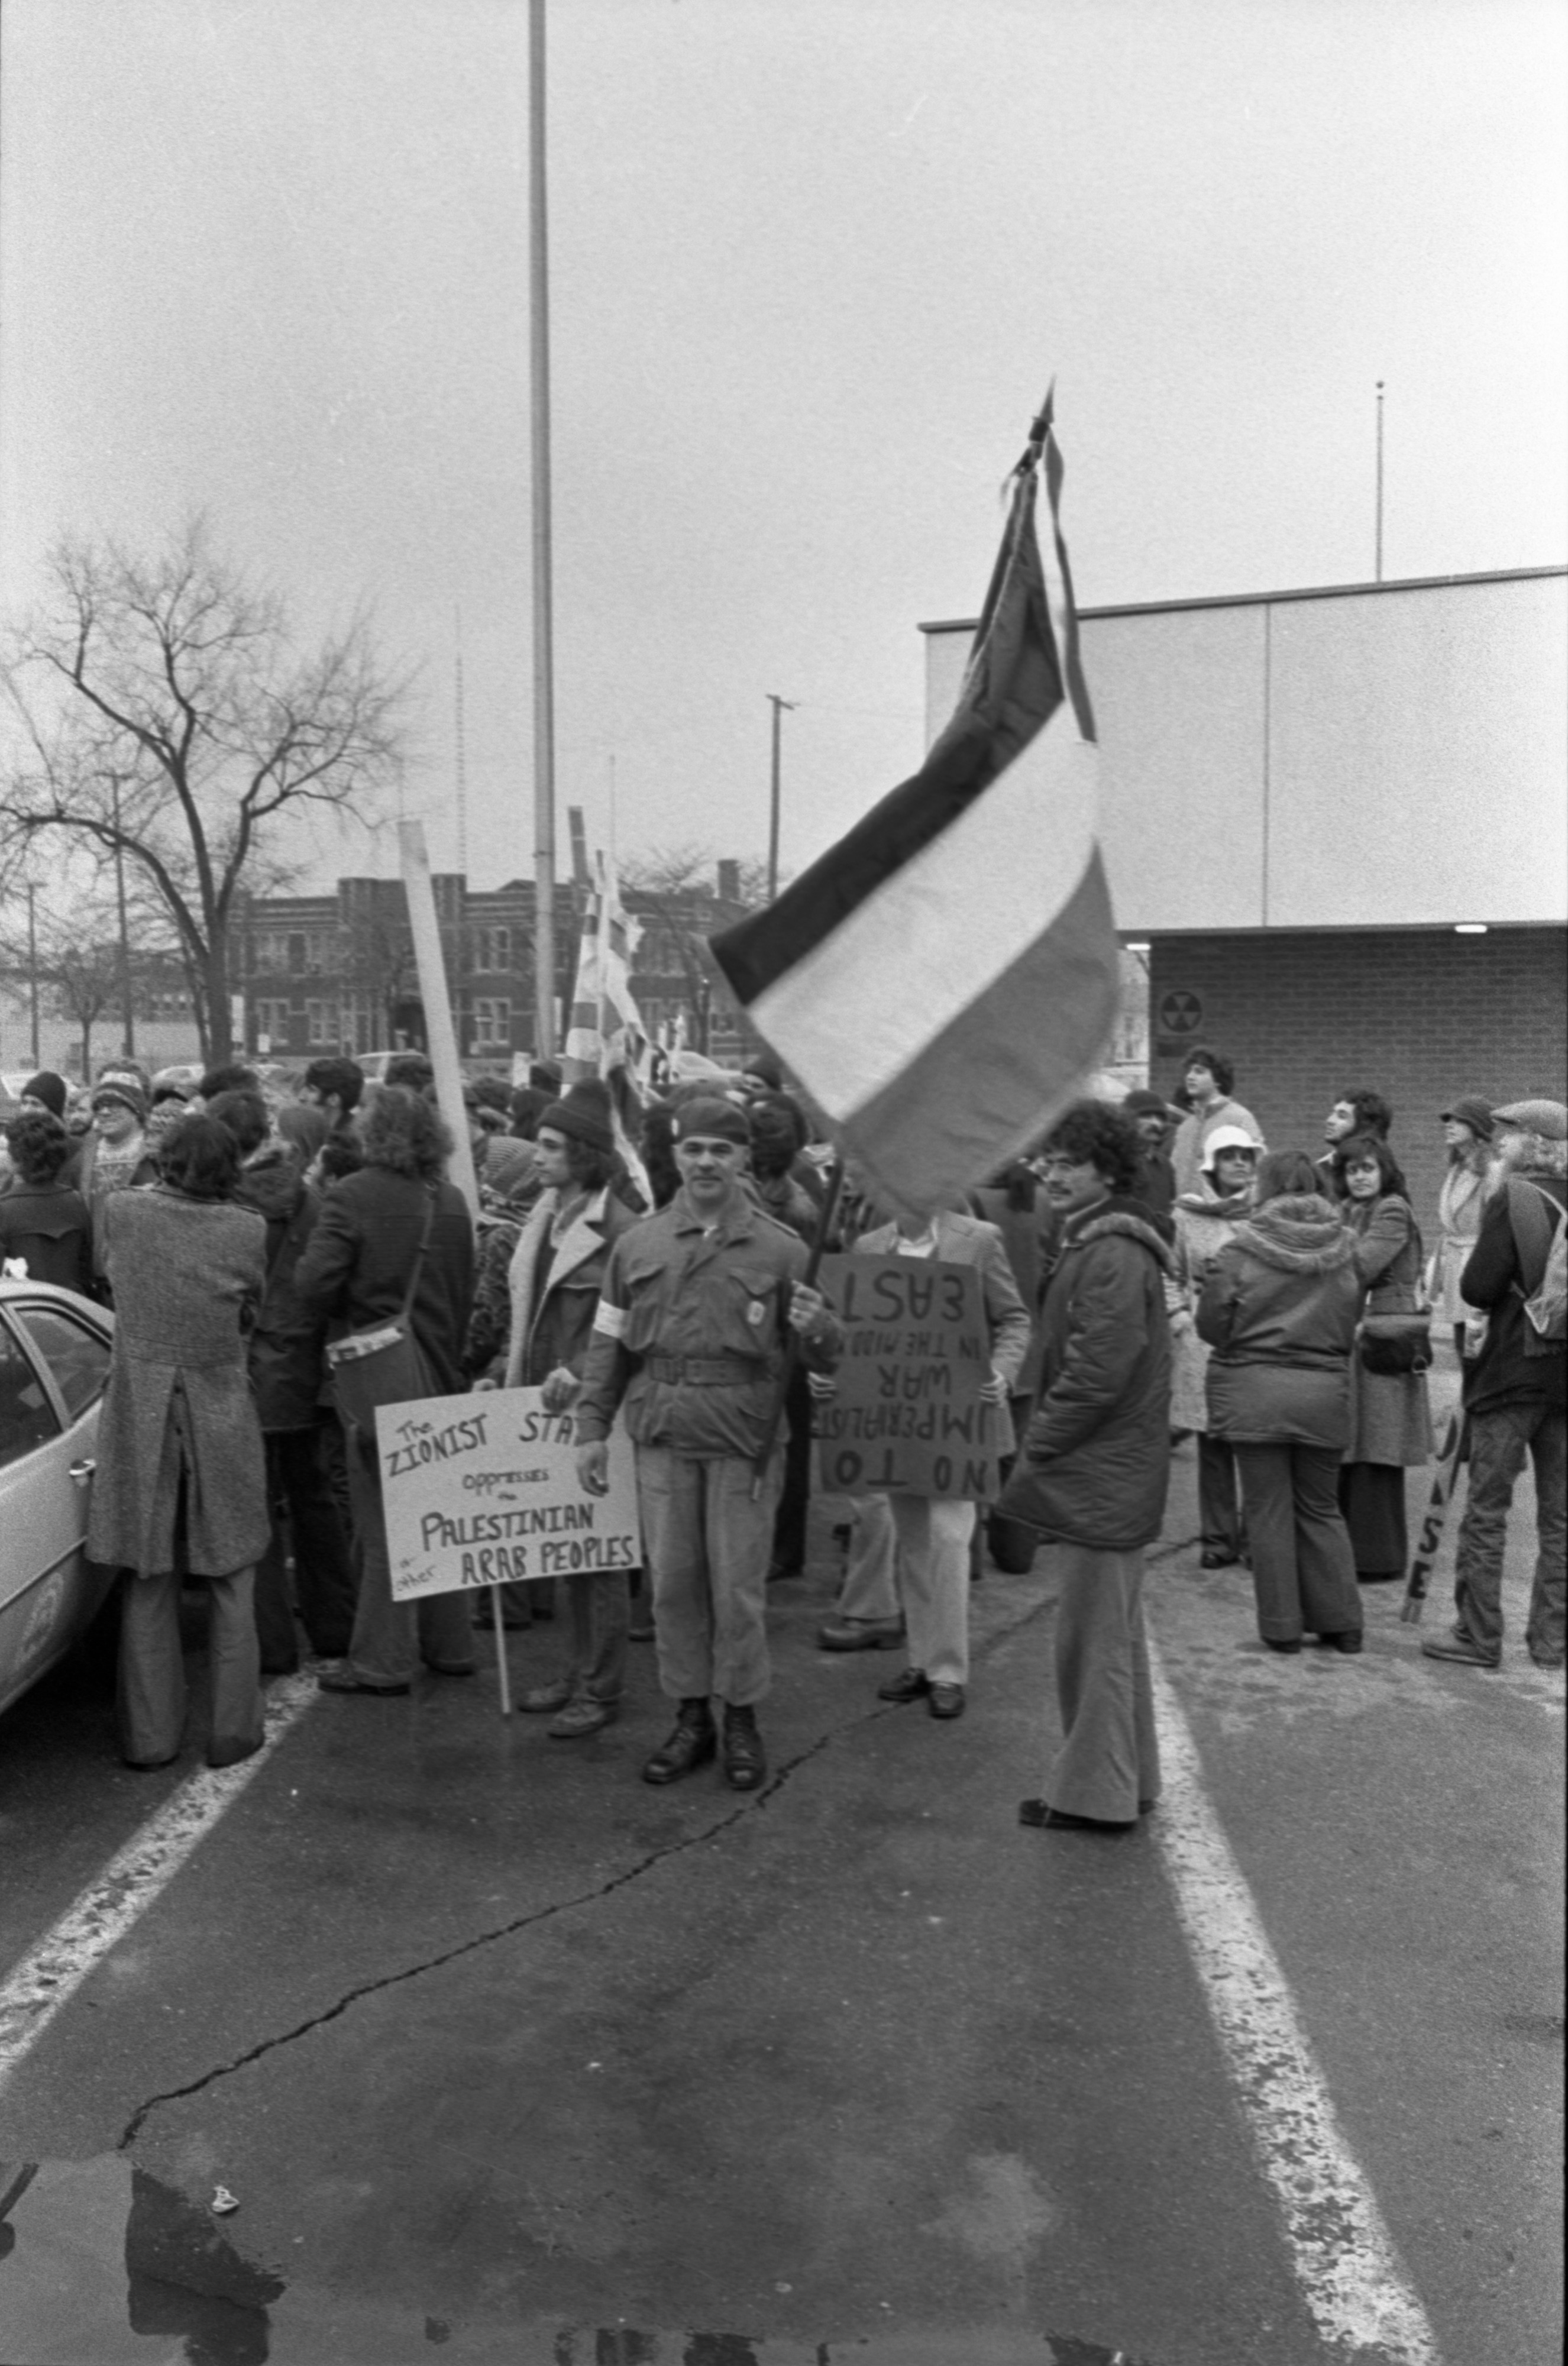 Demonstrators At City Hall In Support Of Arab States, March 1975 image